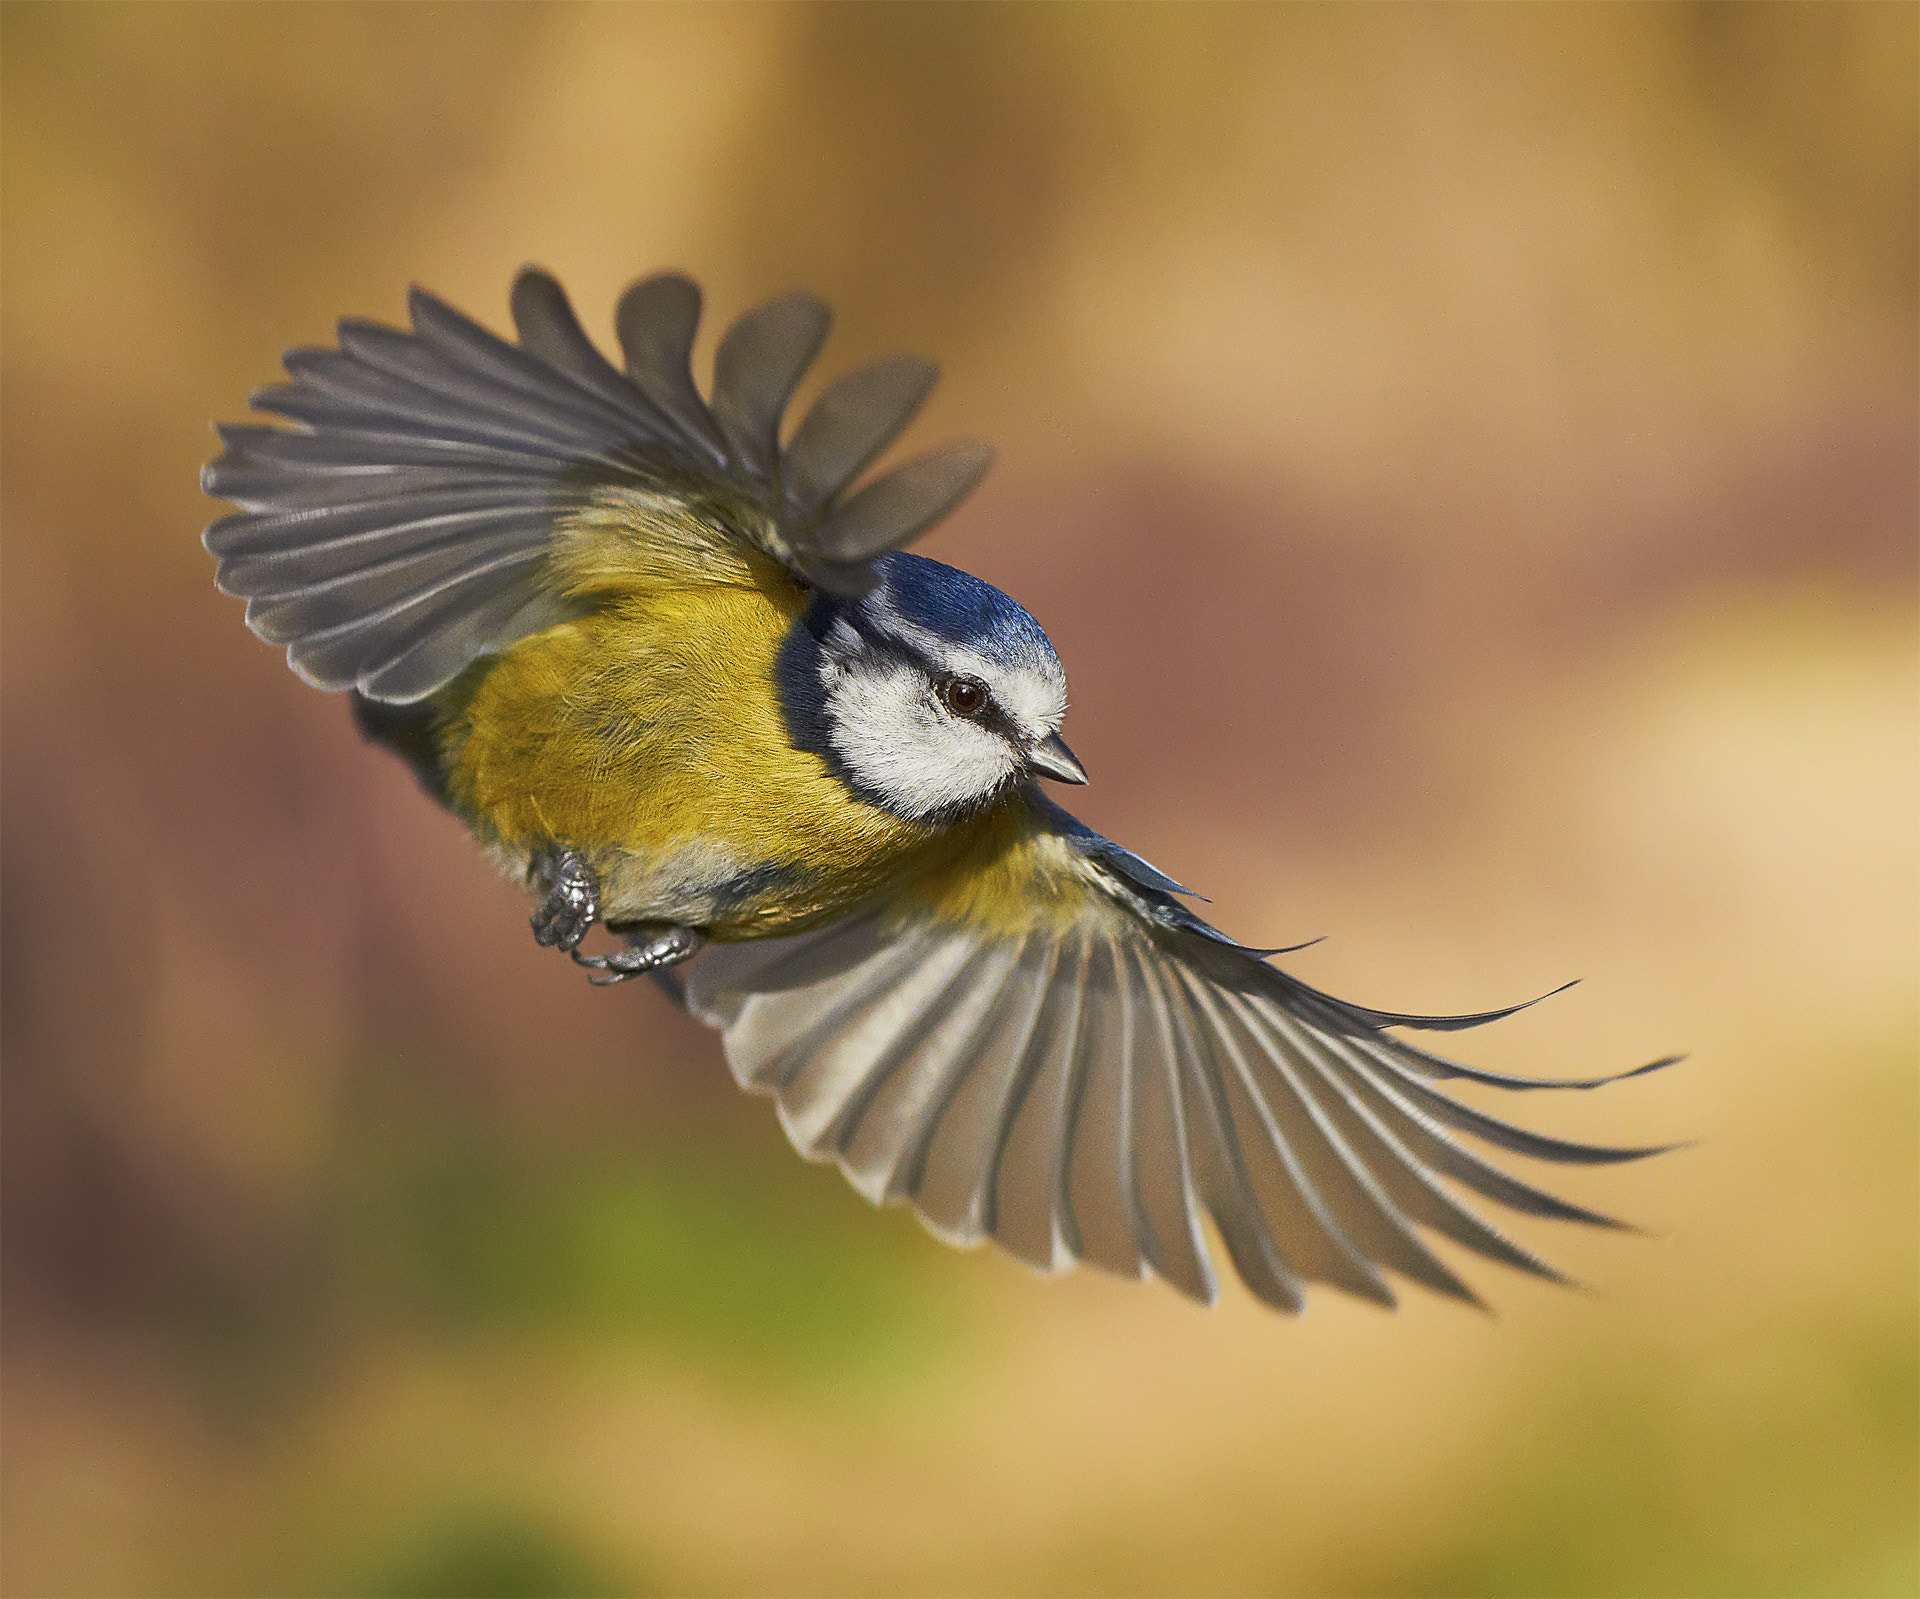 Photograph Blue Tit in flight by Jerry Nicholls on 500px